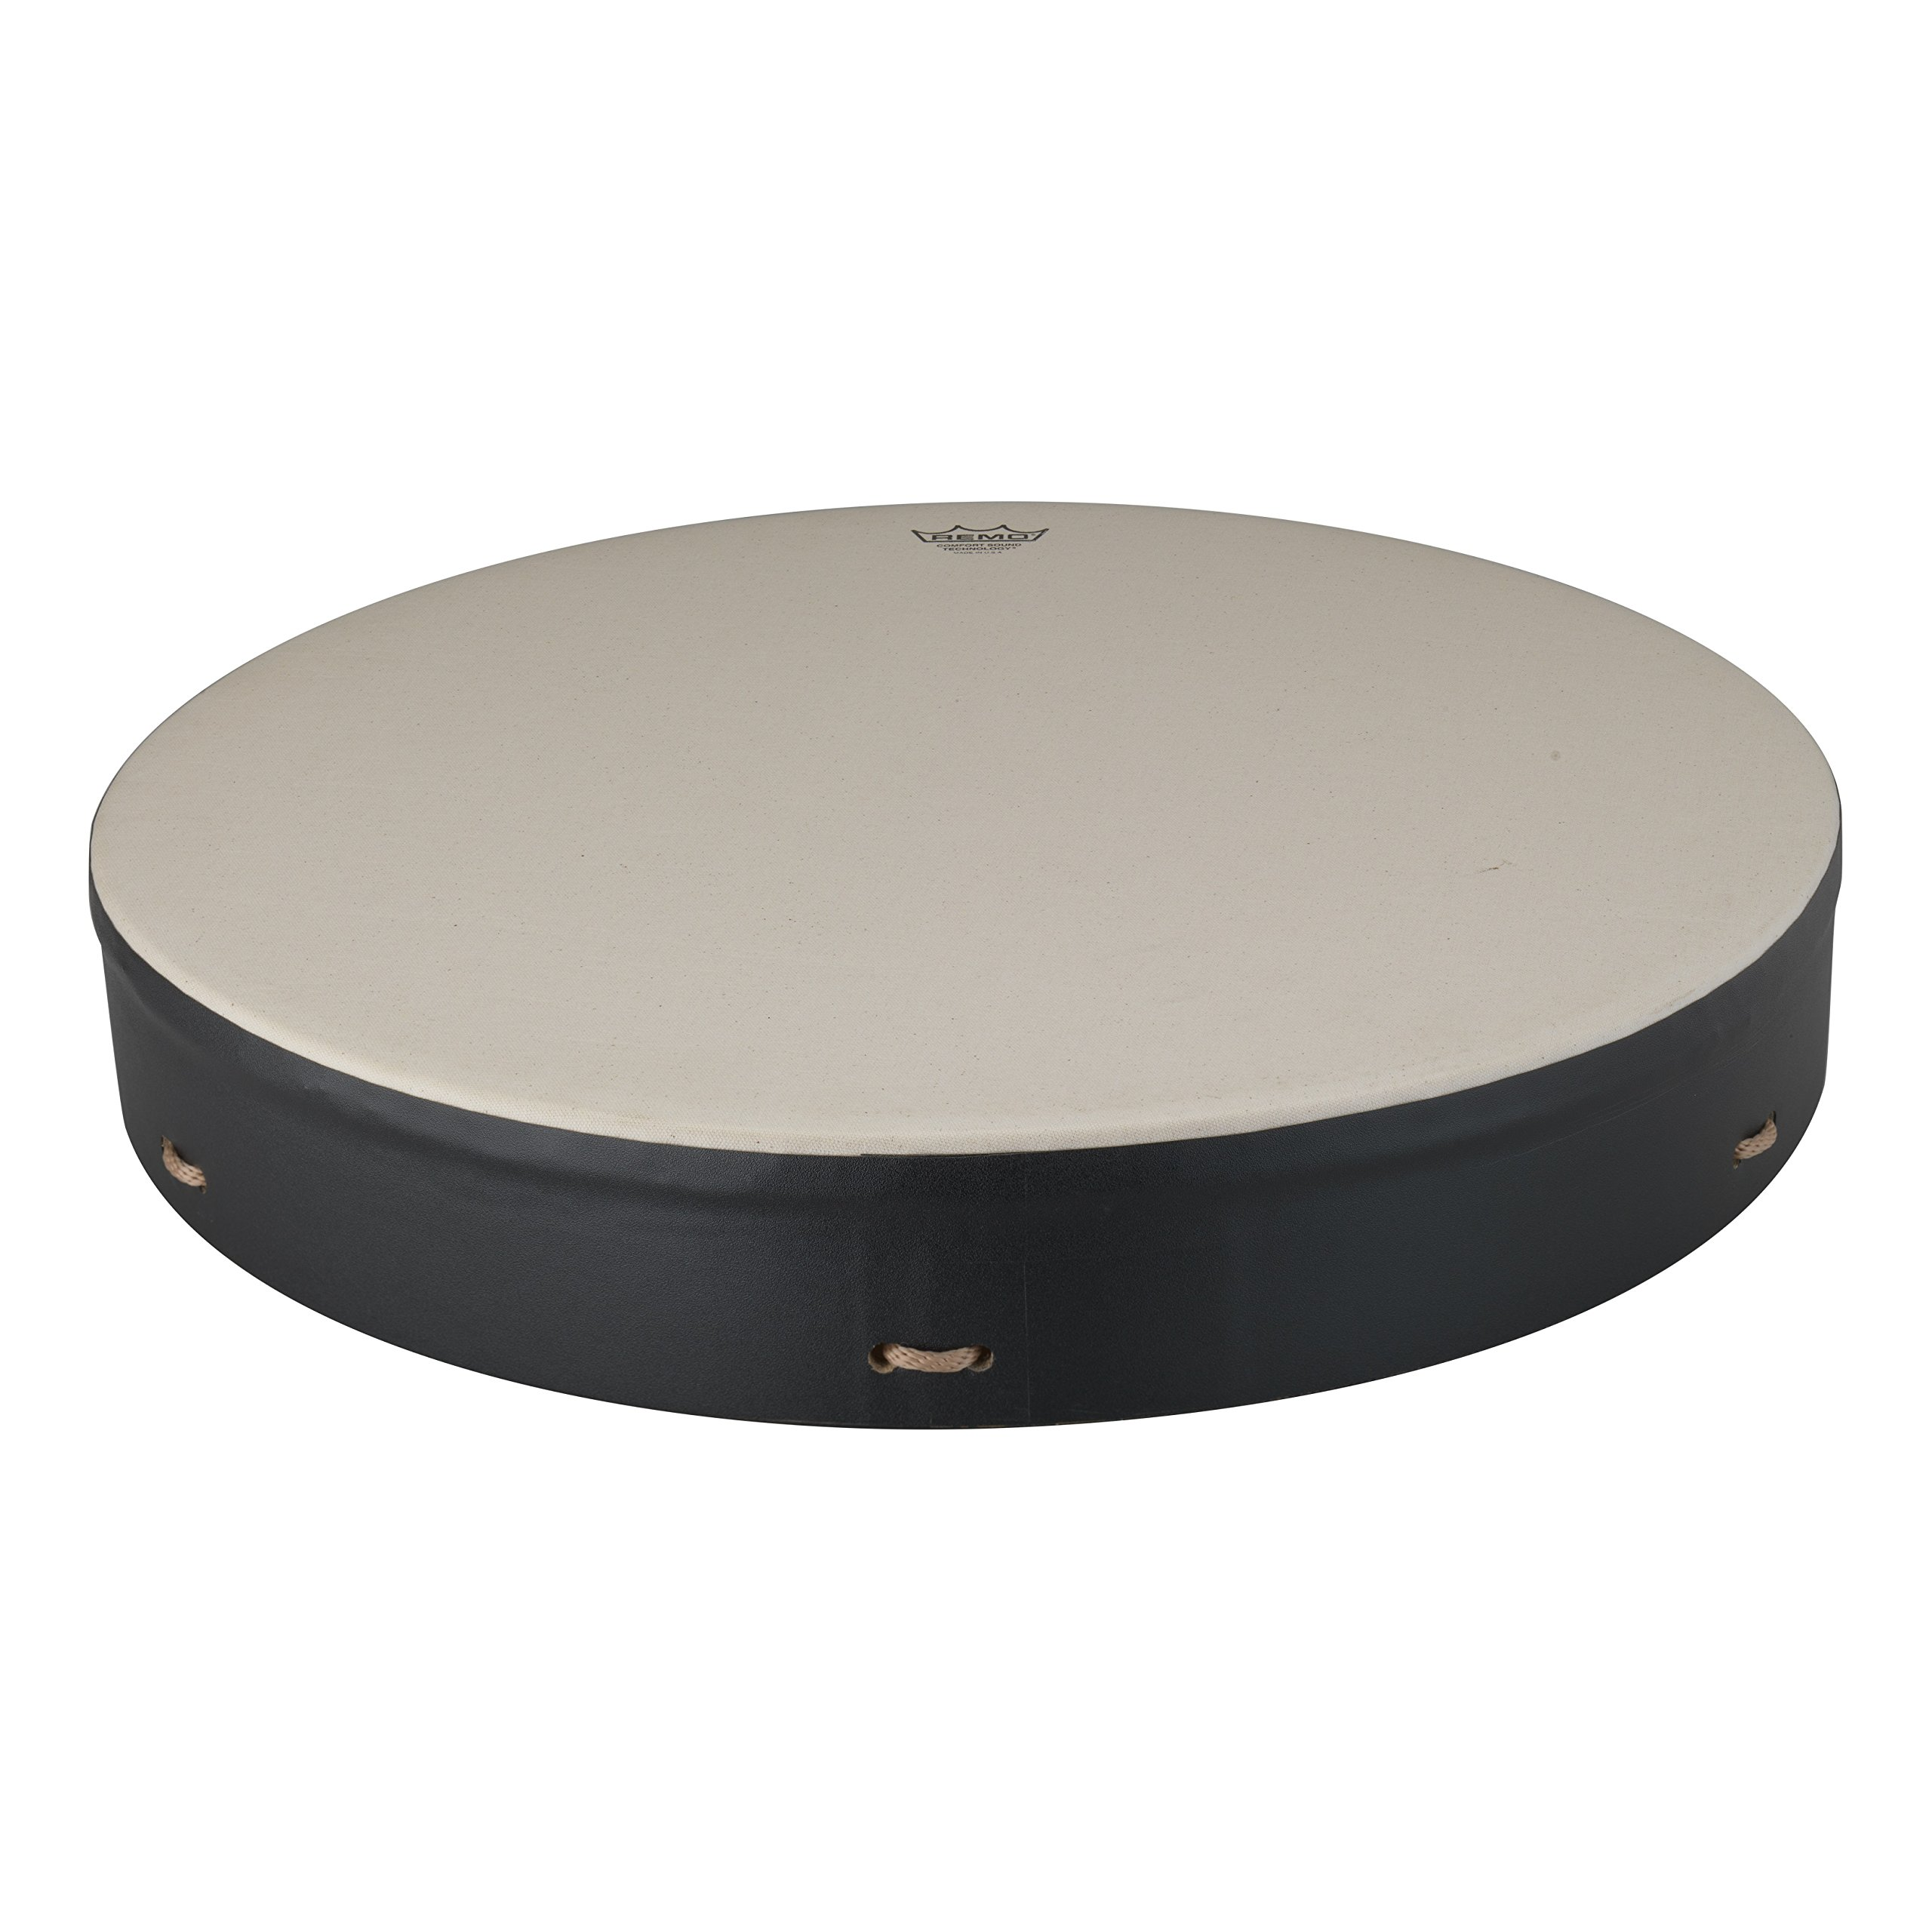 Remo 22'' x 3.5'' Buffalo Drum with Comfort Sound Technology Drumhead